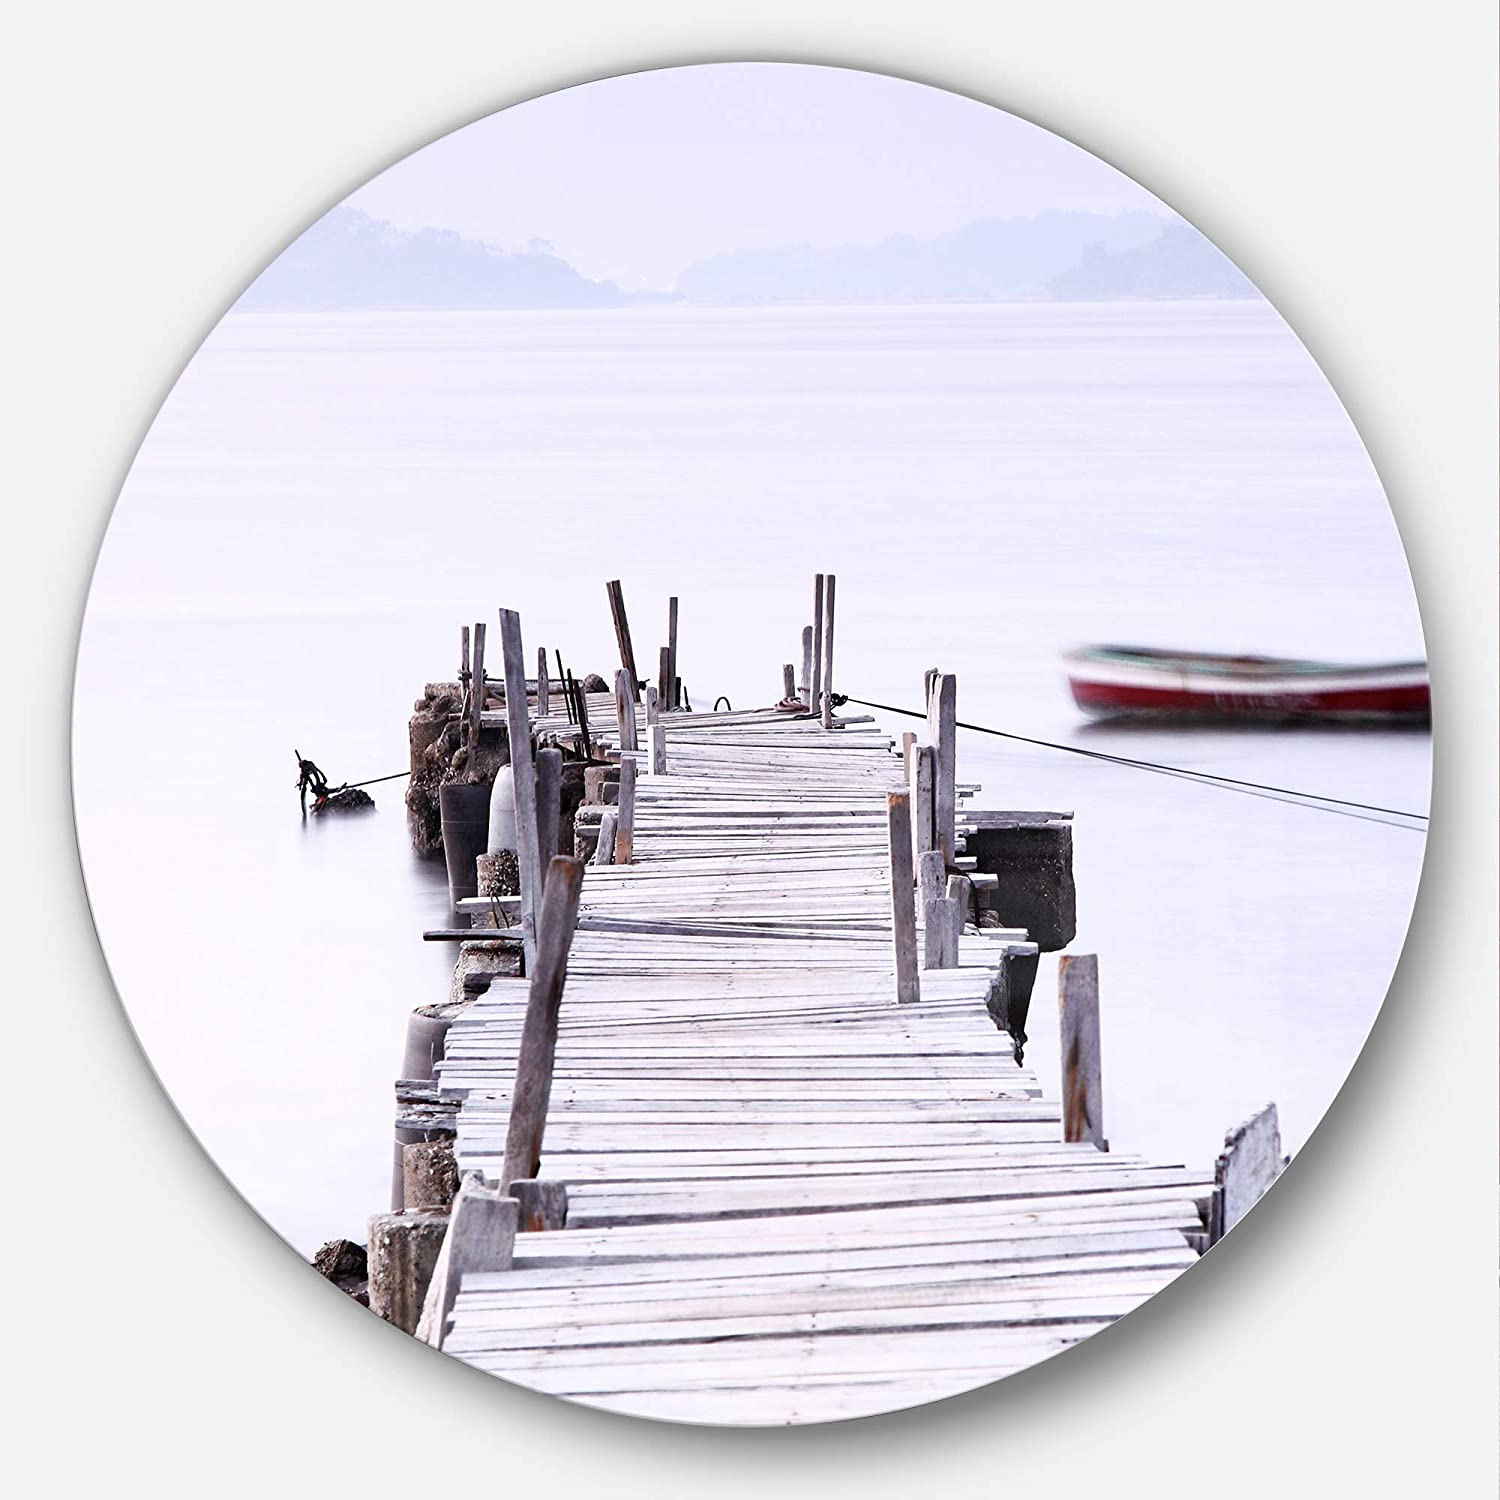 Designart Mt8403 C11 Foggy Sea With Pier Boats Seascape Photo Large Disc Metal Wall Art 11 X 11 Blue Amazon In Home Kitchen